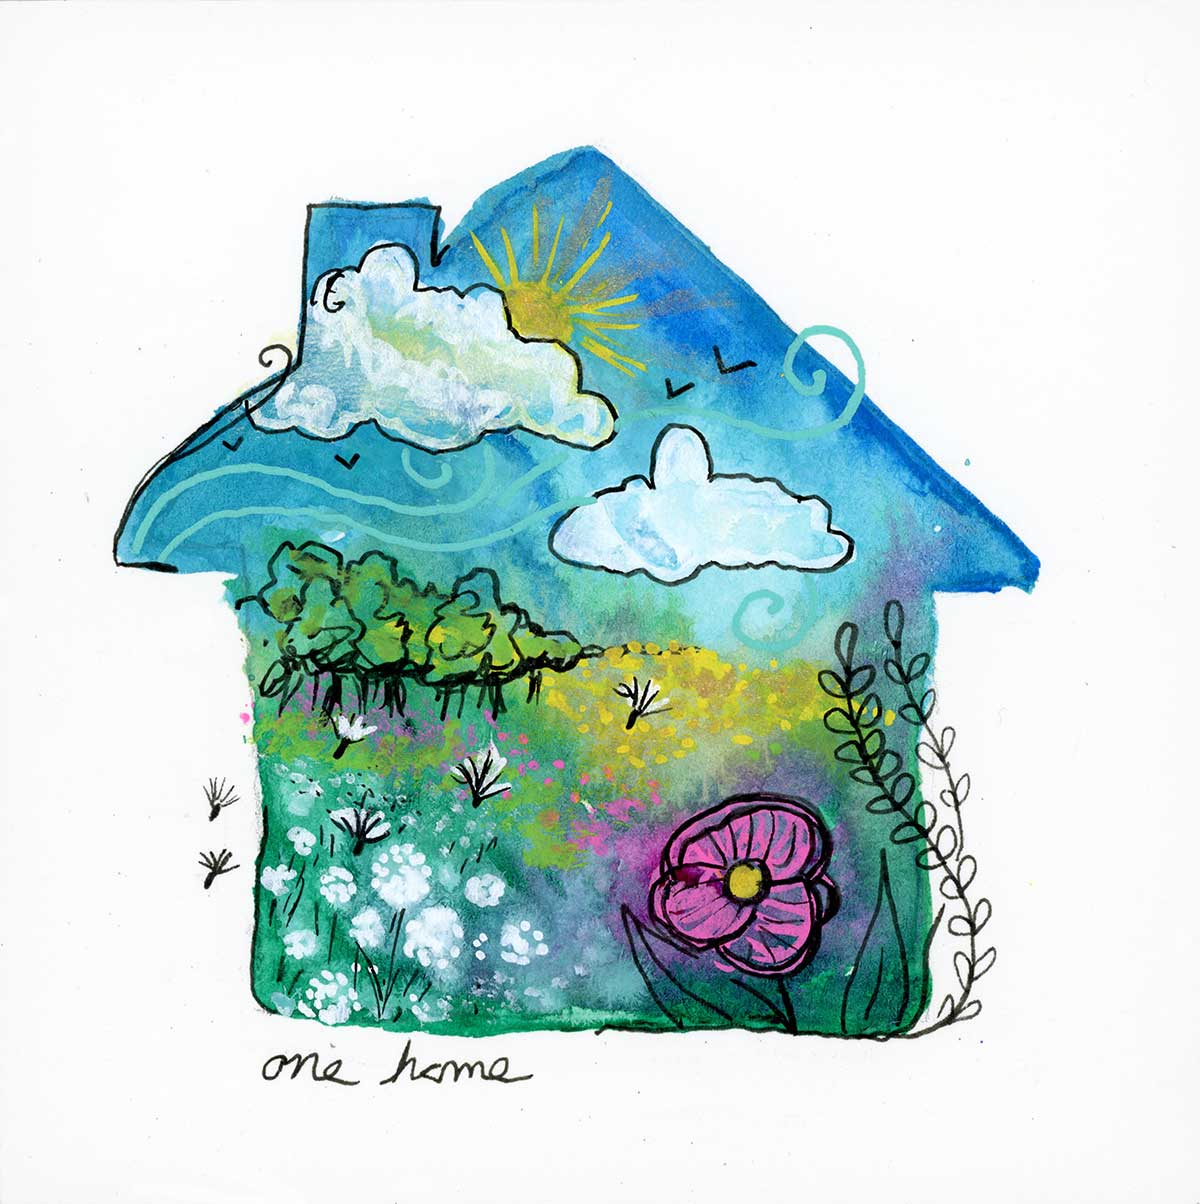 """One Home, 4"""" x 4"""", mixed media"""